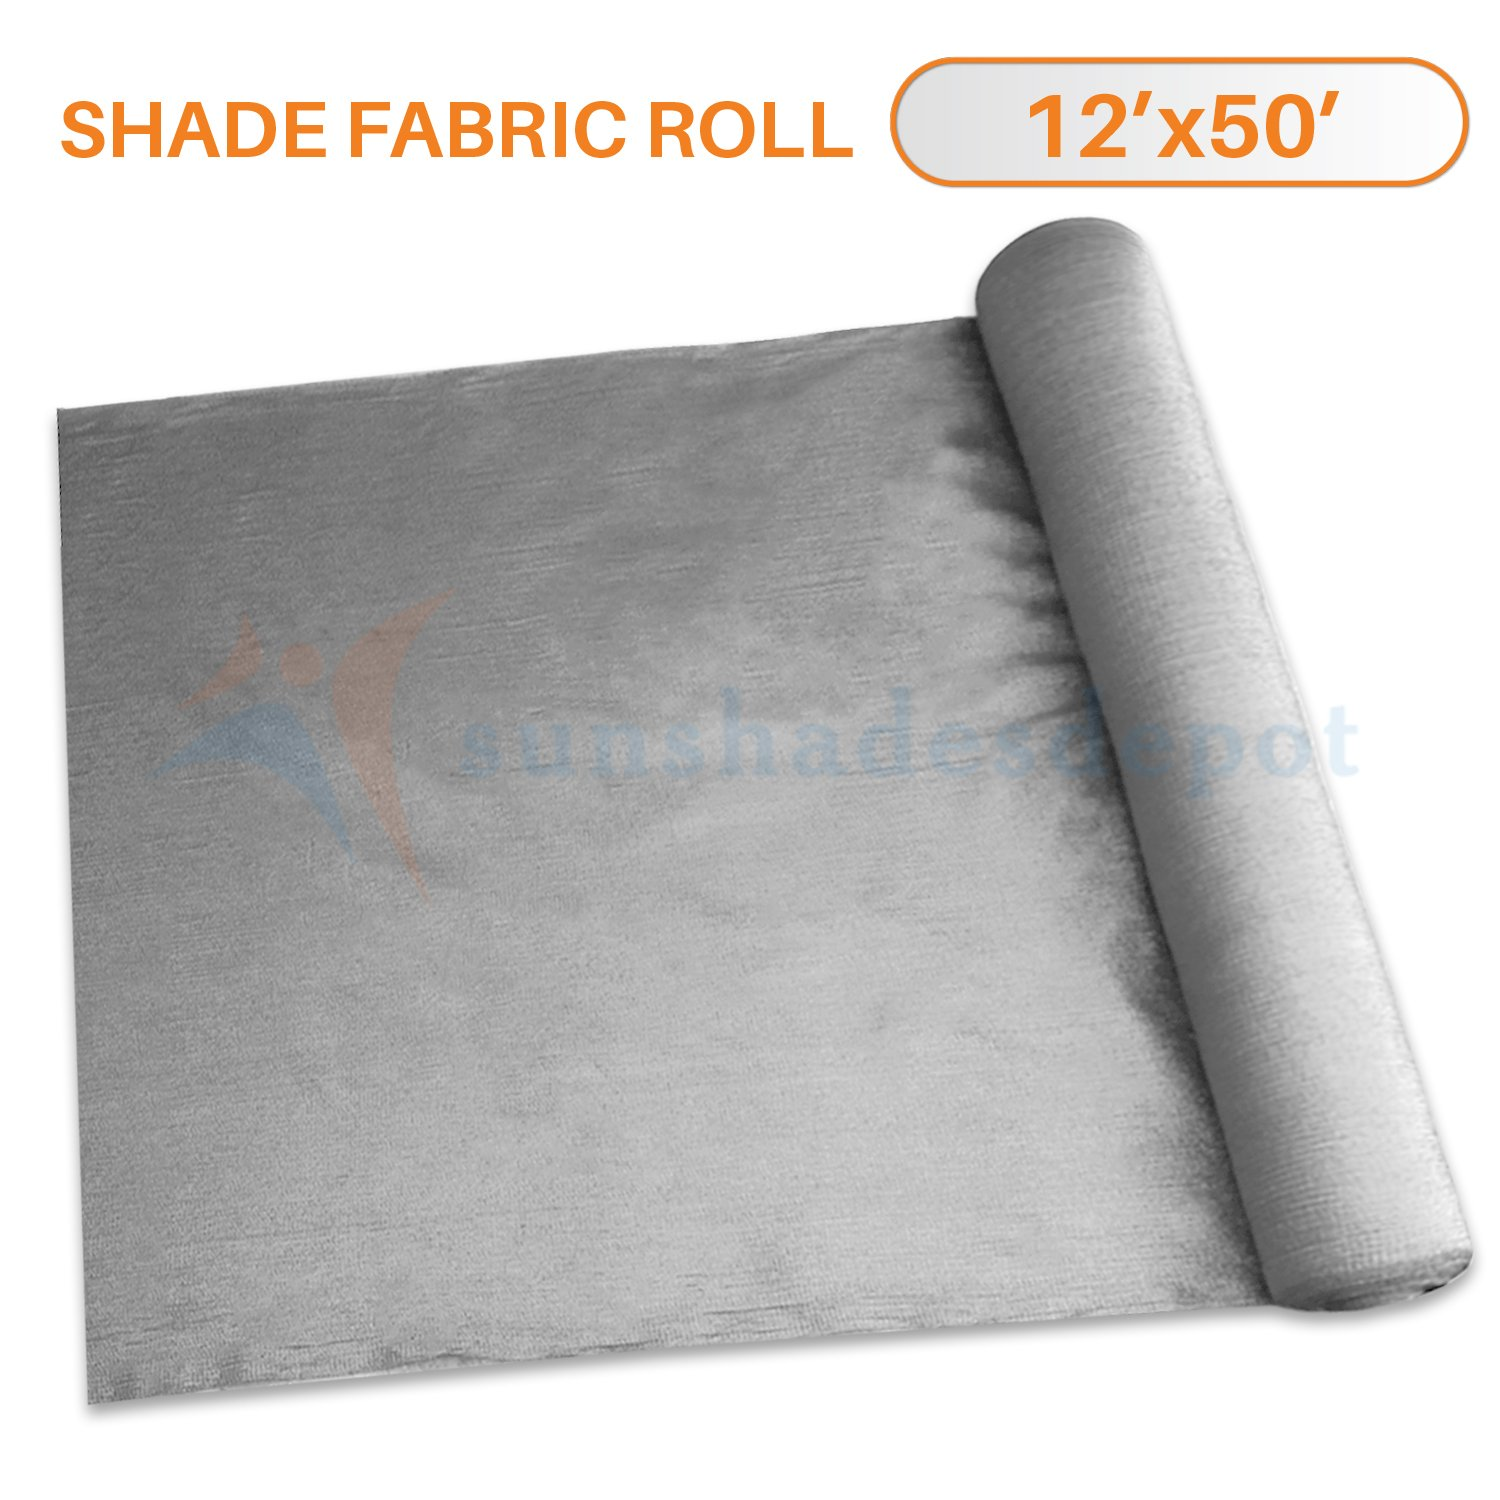 Sunshades Depot 12' x 50' Shade Cloth 180 GSM HDPE Light Grey Fabric Roll Up to 95% Blockage UV Resistant Mesh Net by Sunshades Depot